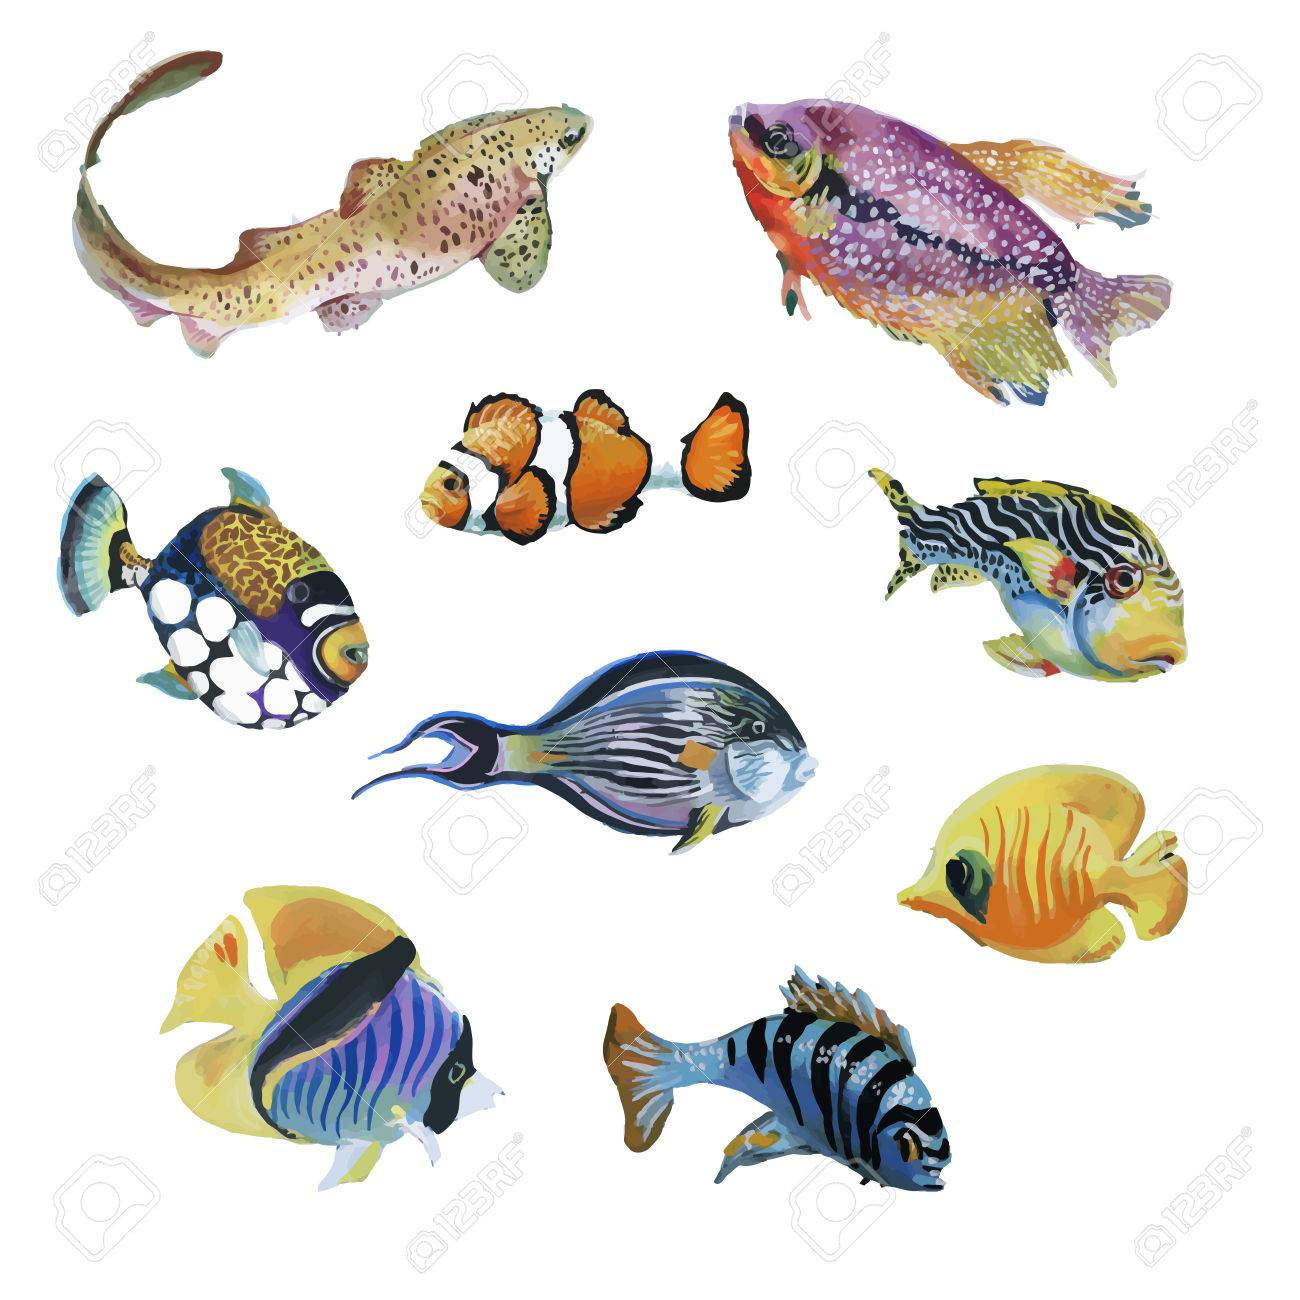 Marine life watercolor set with Tropical fish. - 46095257